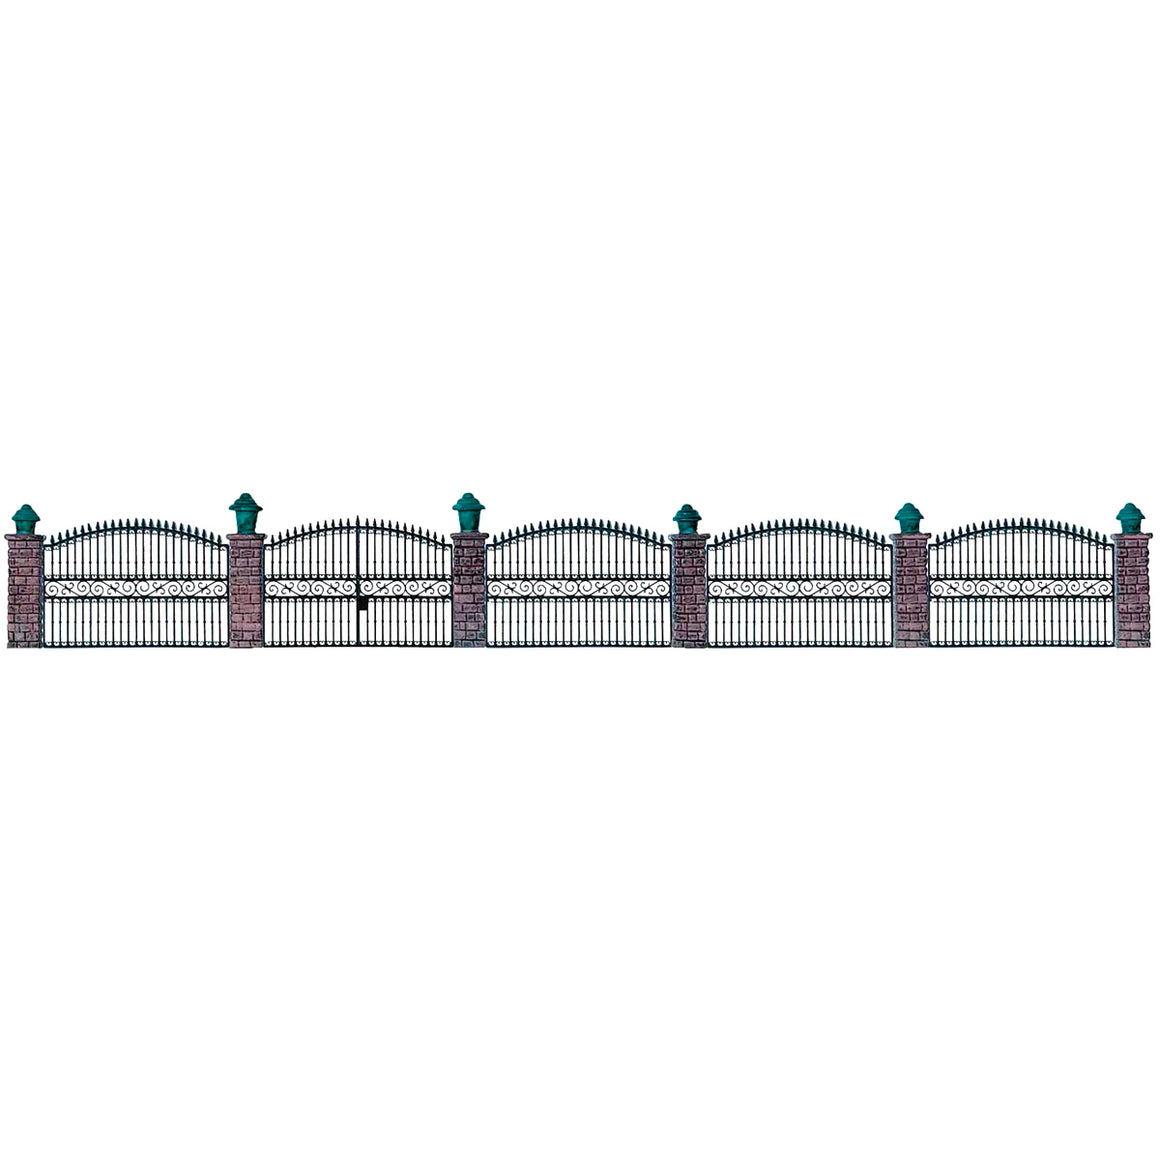 HO Scale: Wrought Iron Fence - Kit